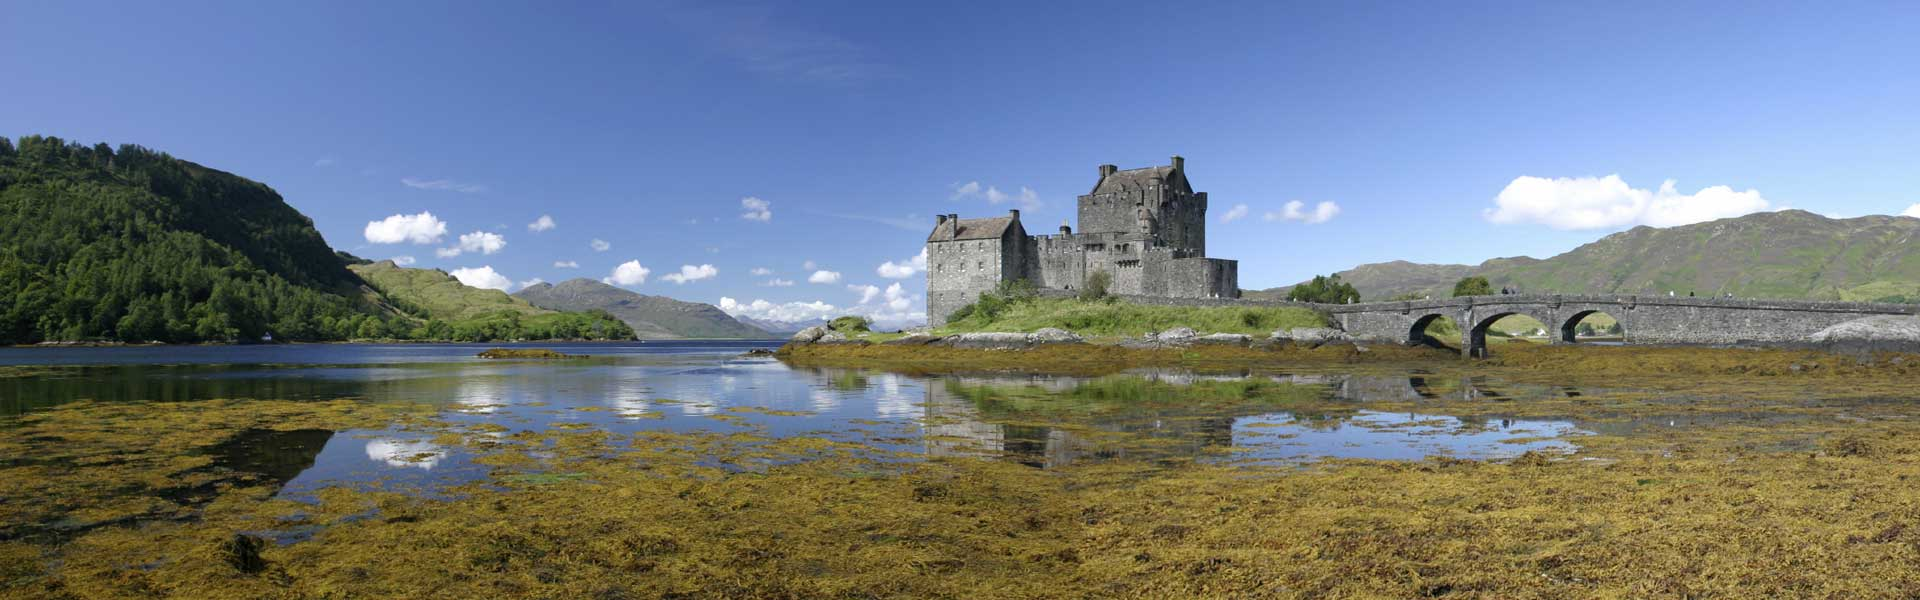 Scotland - Historic and Romantic